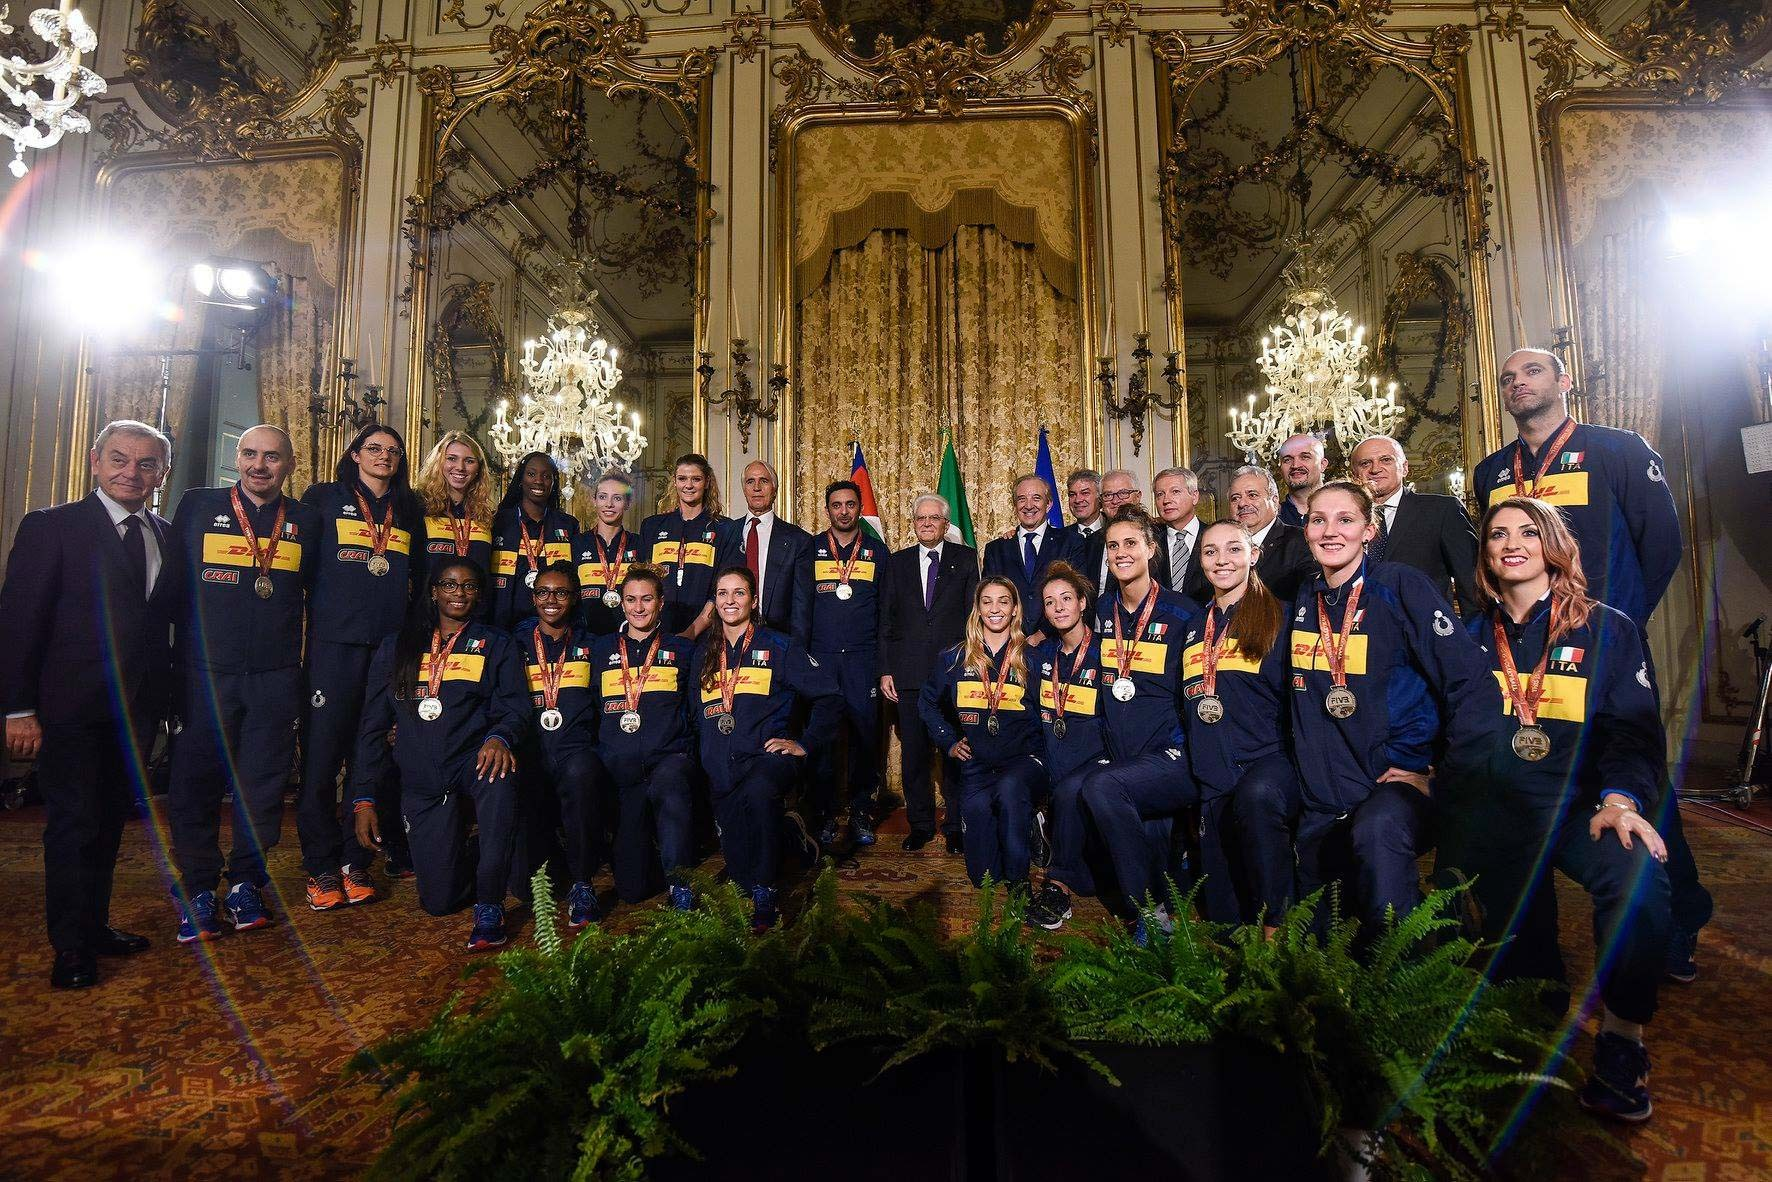 The President of Italy, Sergio Mattarella, receives the National women's volleyball team at the Quirinale Palace